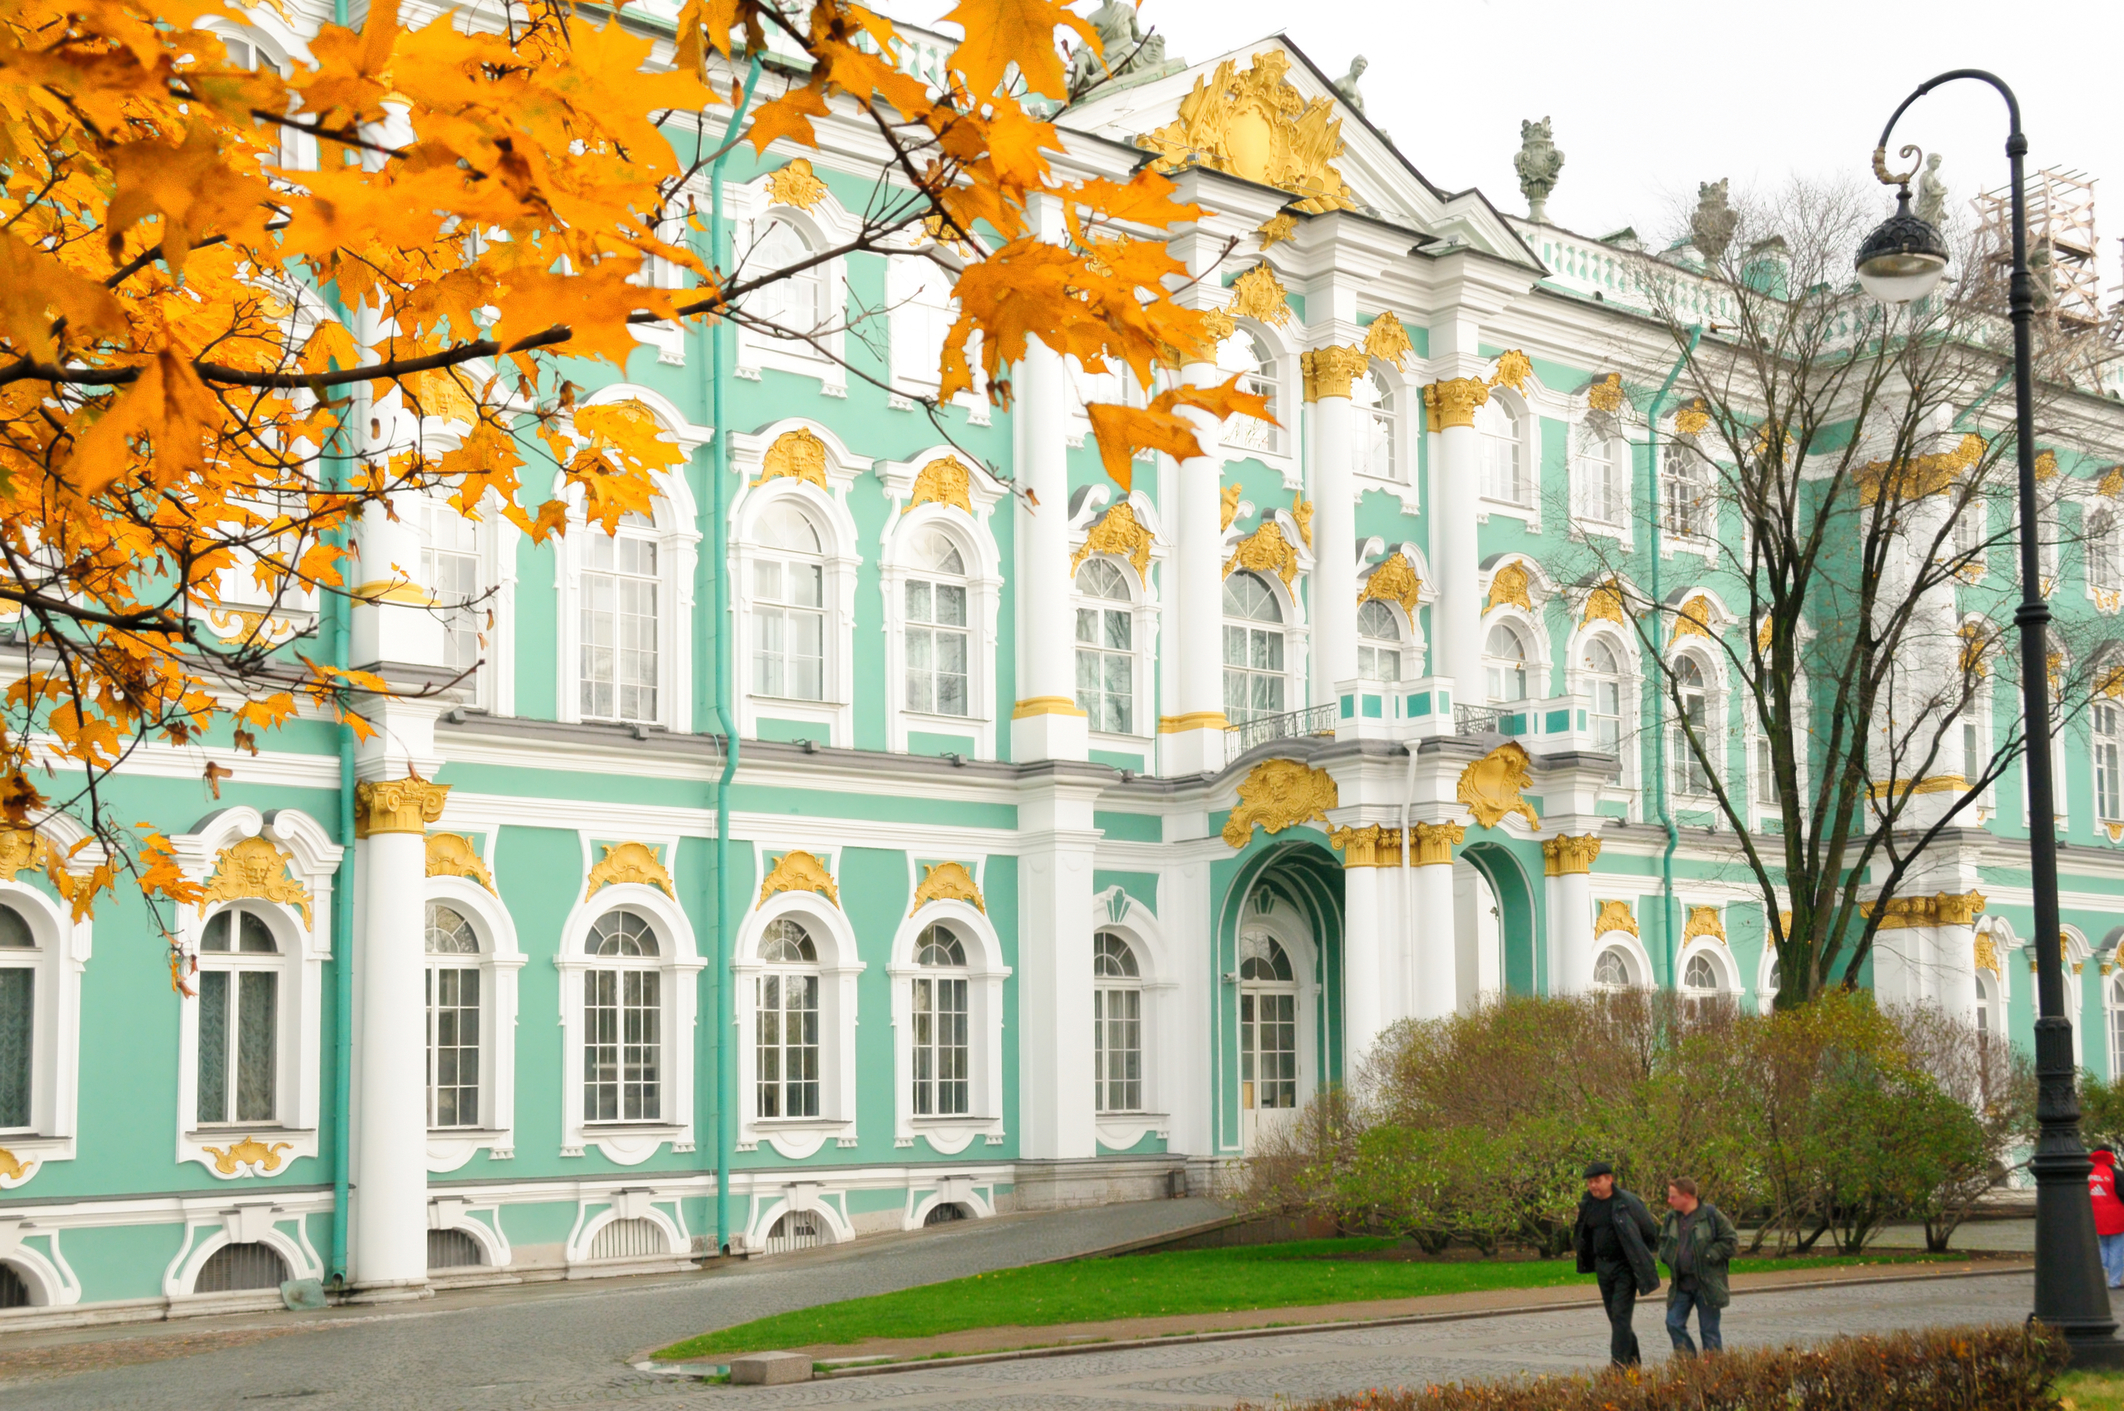 Winter Palace : Hermitage, St Petersburg, Russia